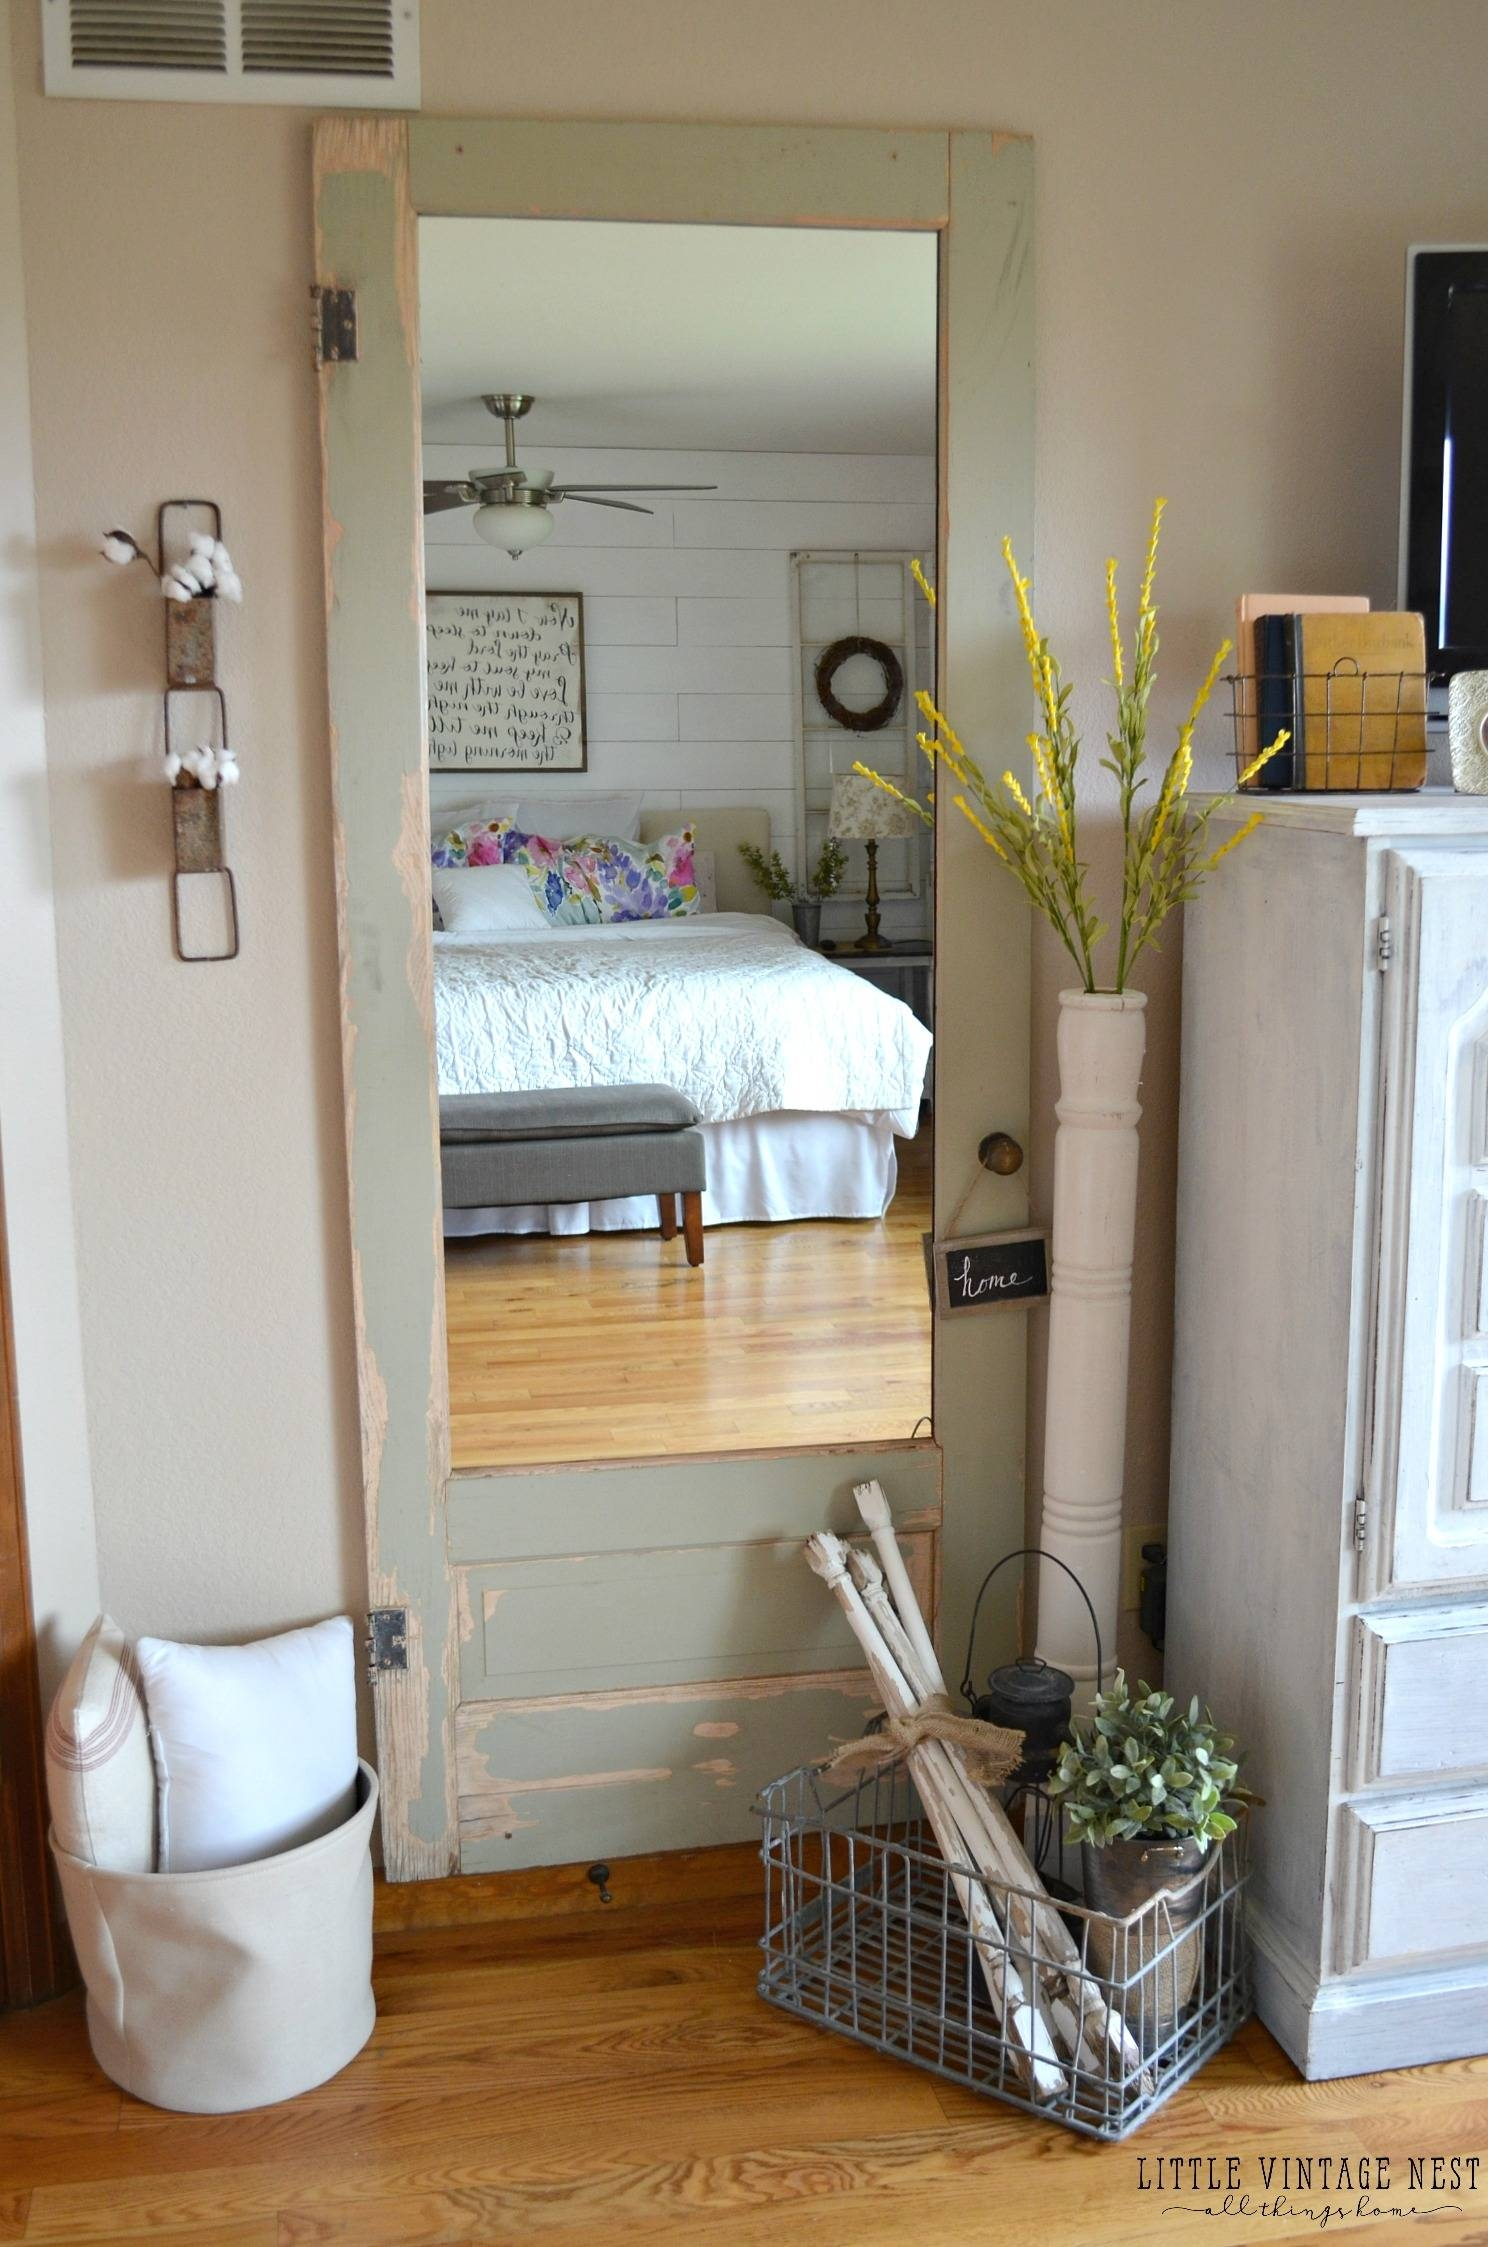 Old Door Turned Full Length Mirror - Little Vintage Nest regarding Vintage Full Length Mirrors (Image 20 of 25)